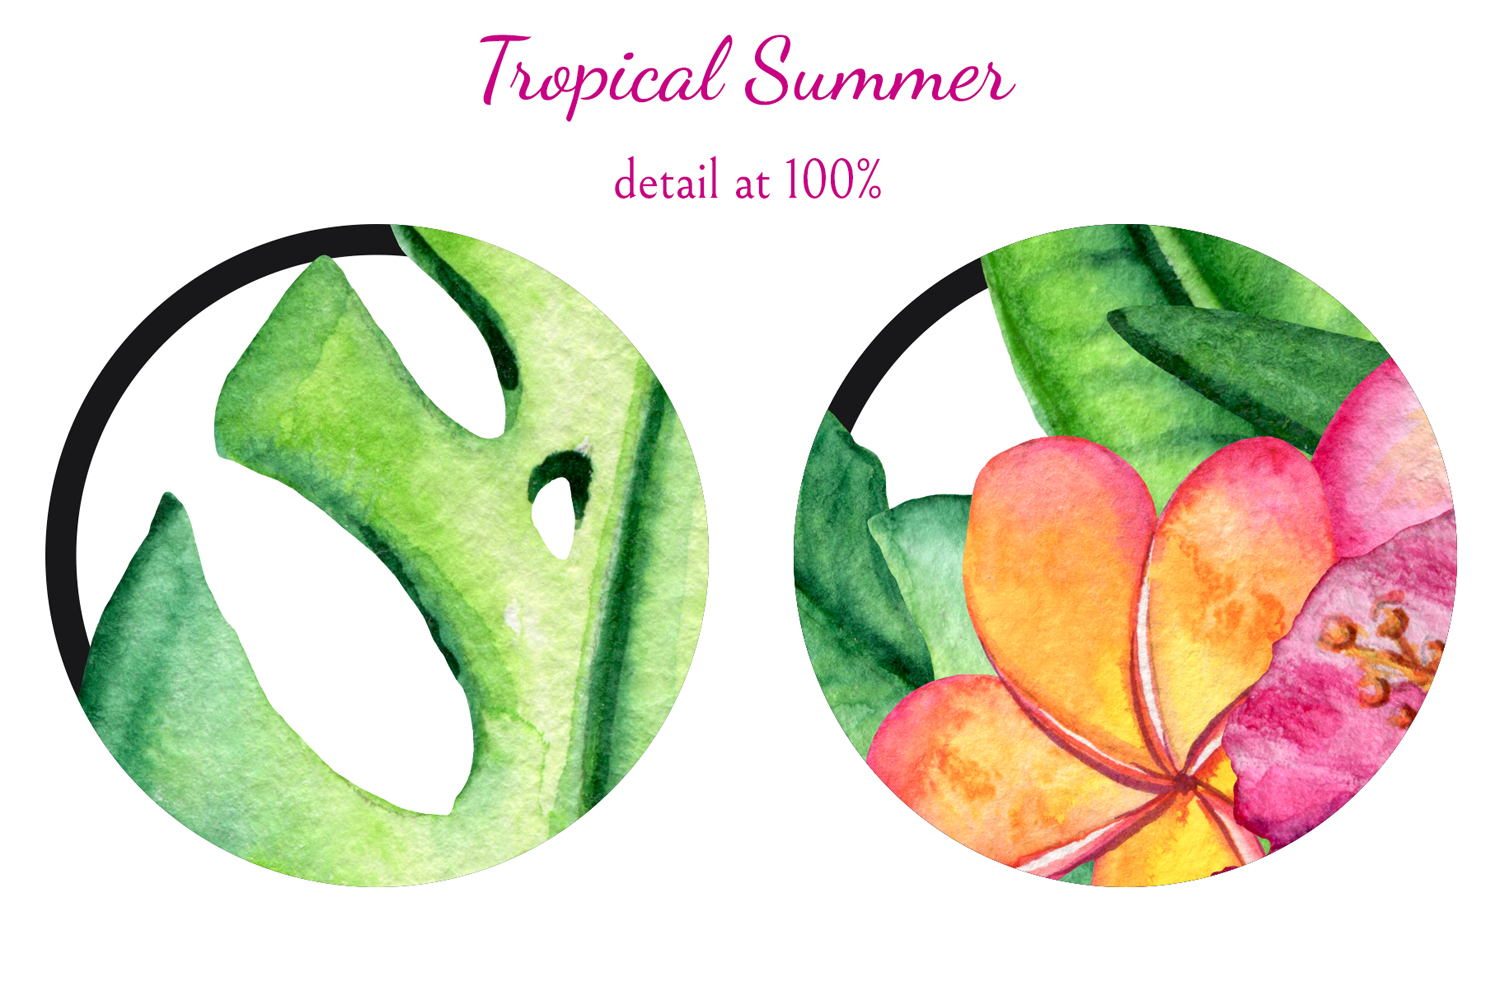 Tropical Summer example image 2